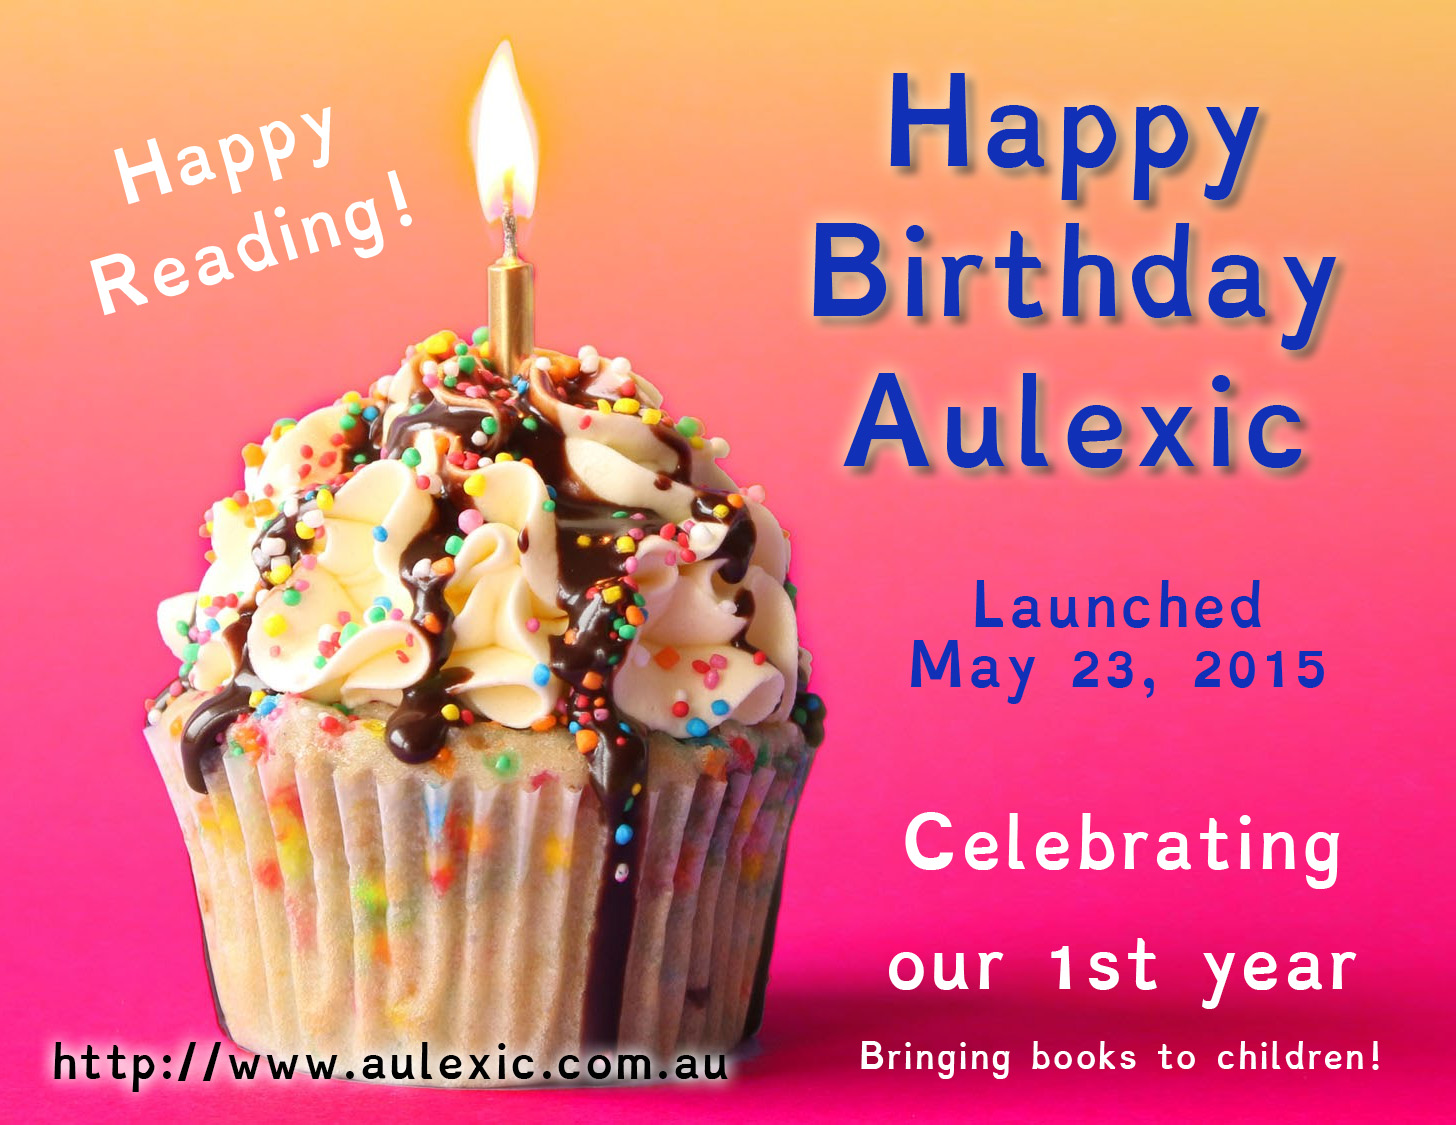 Happy Birthday Aulexic!